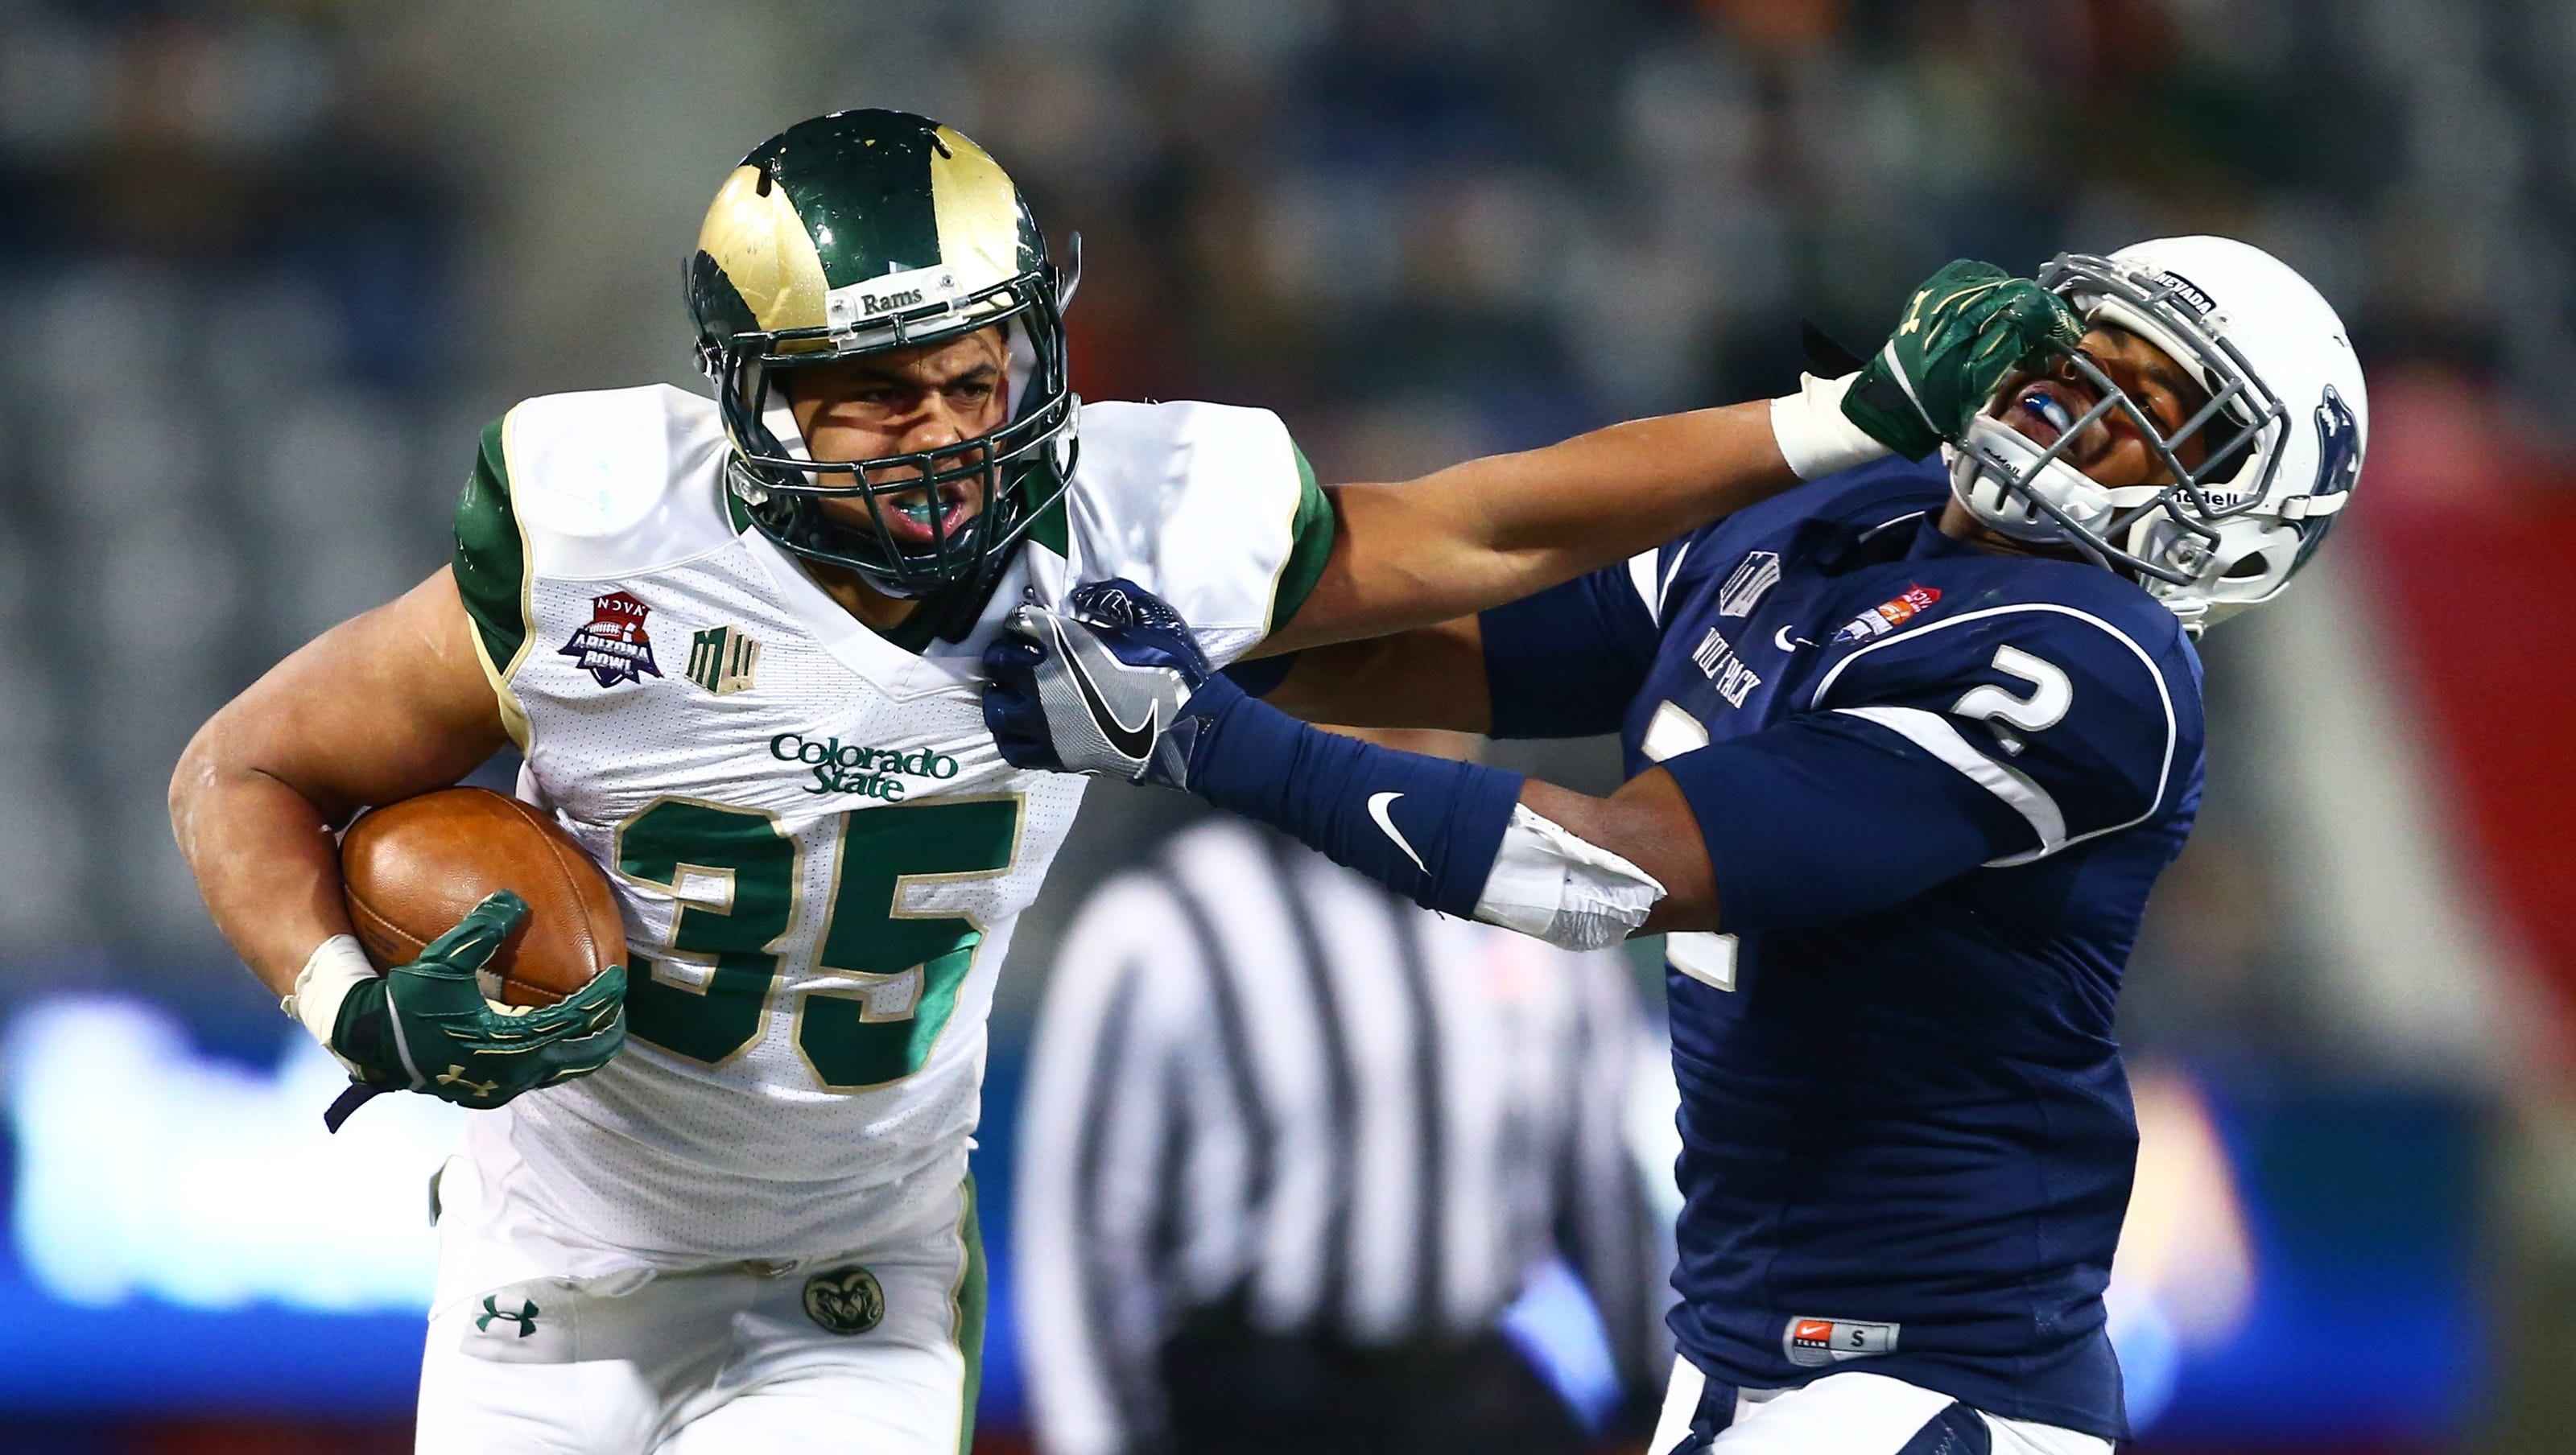 Cfp Revenue Keeps Bowl System Financed For Csu Others